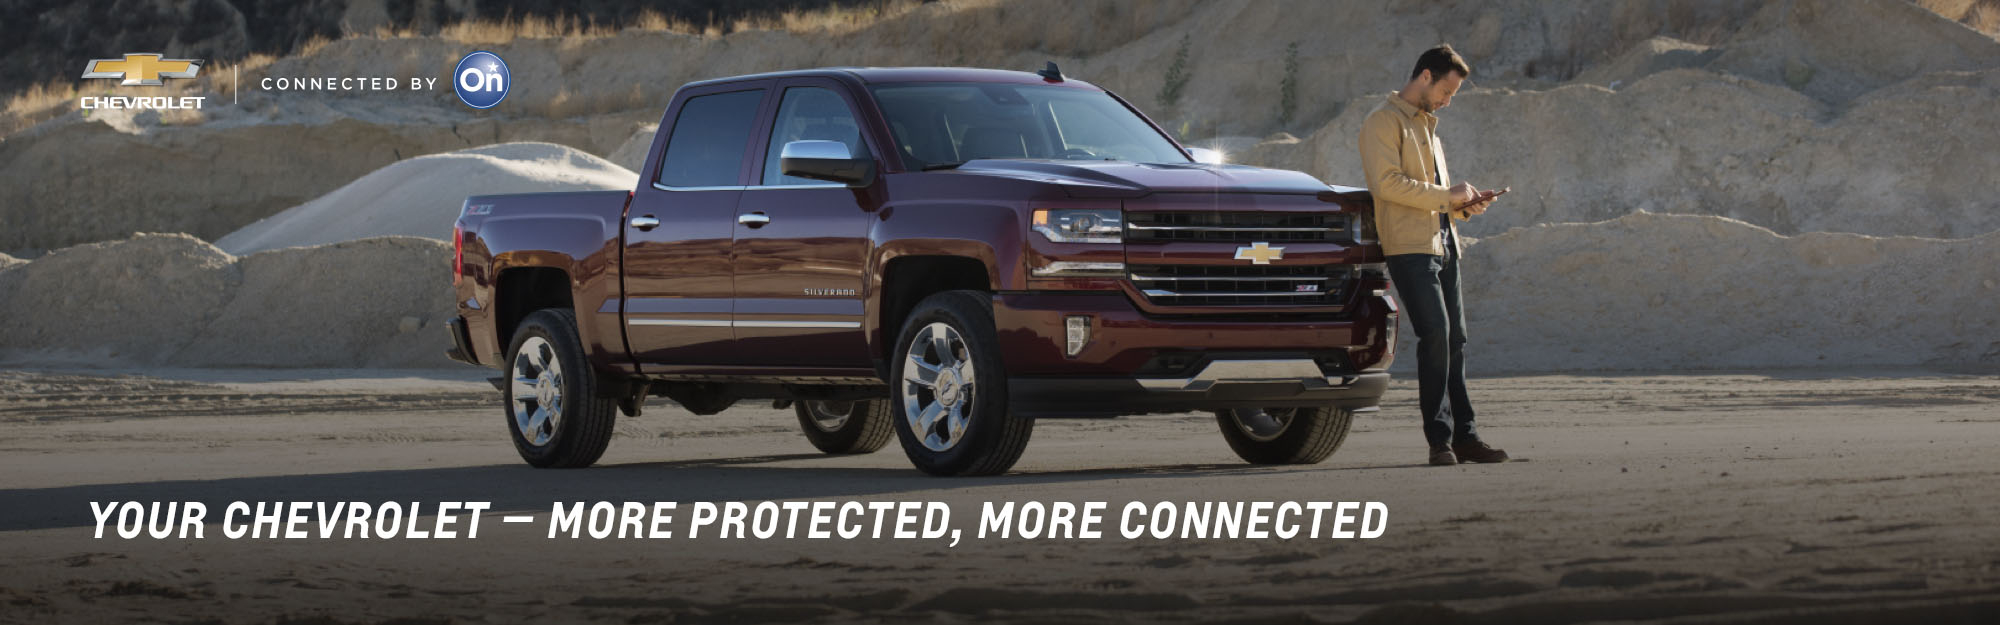 Experience The Safety And Security Of Driving With Onstar 2021 Chevrolet Silverado Navigation System, New Features, Oil Capacity